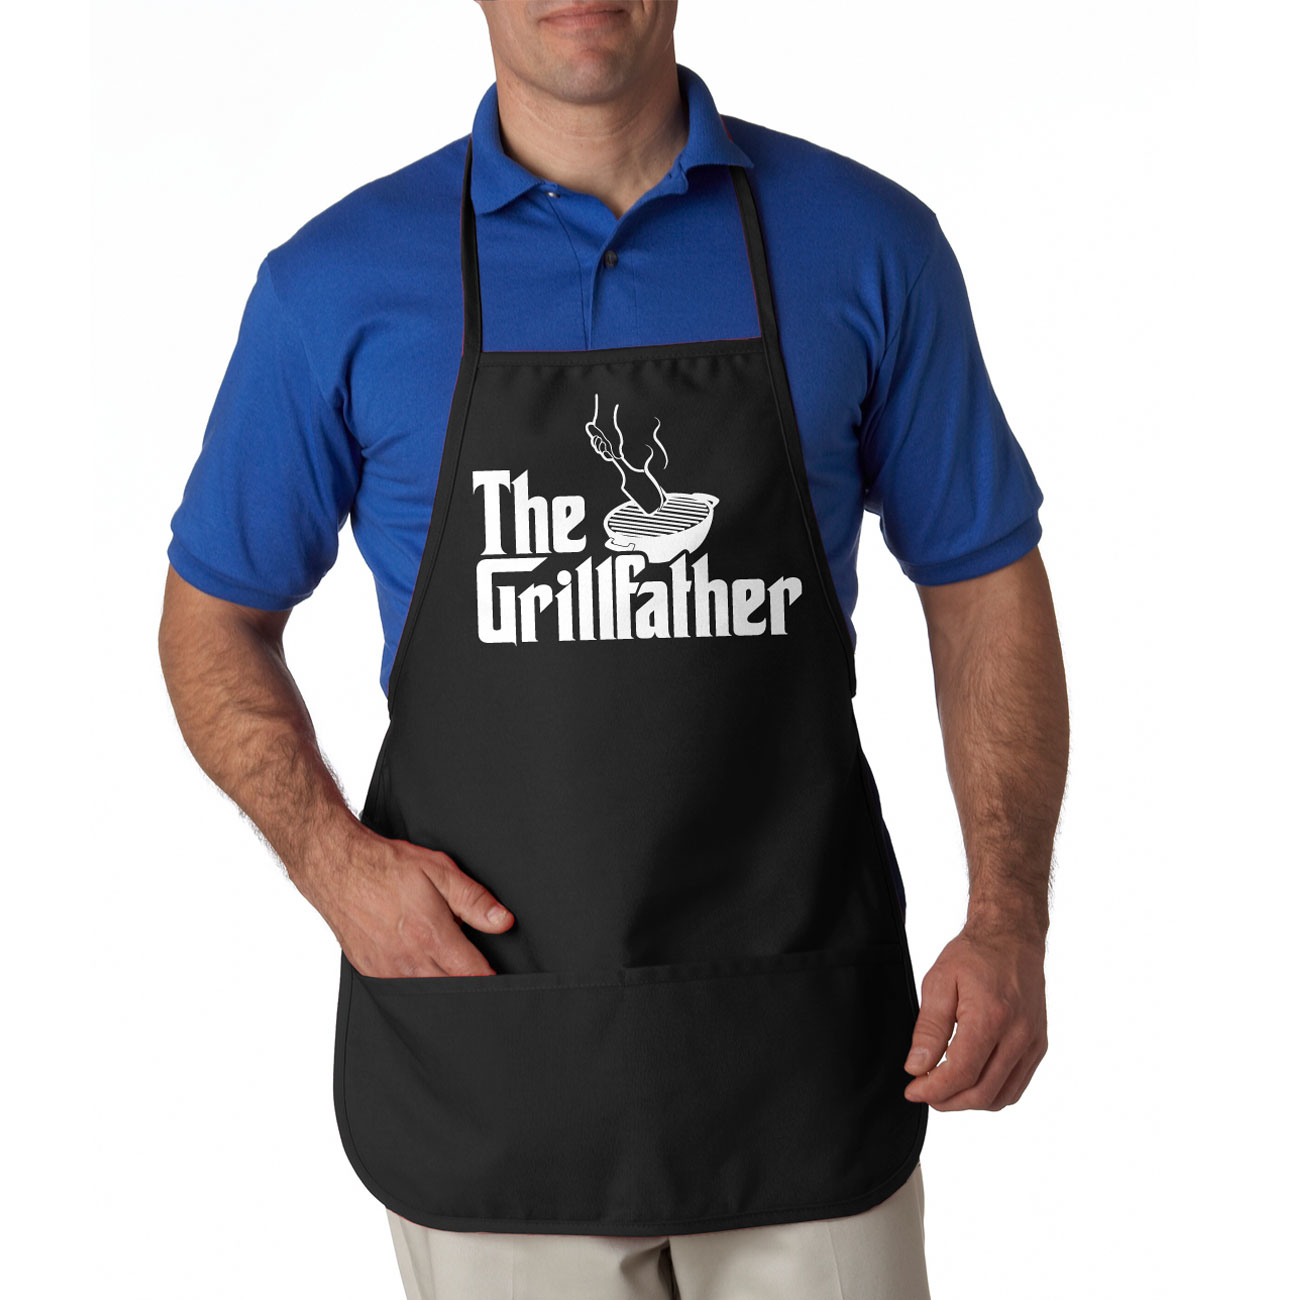 Father's Day Combo The Grillfather Apron and World's Okayest Dad Shirt - Mens Small 553a8489683d6f68258b4751